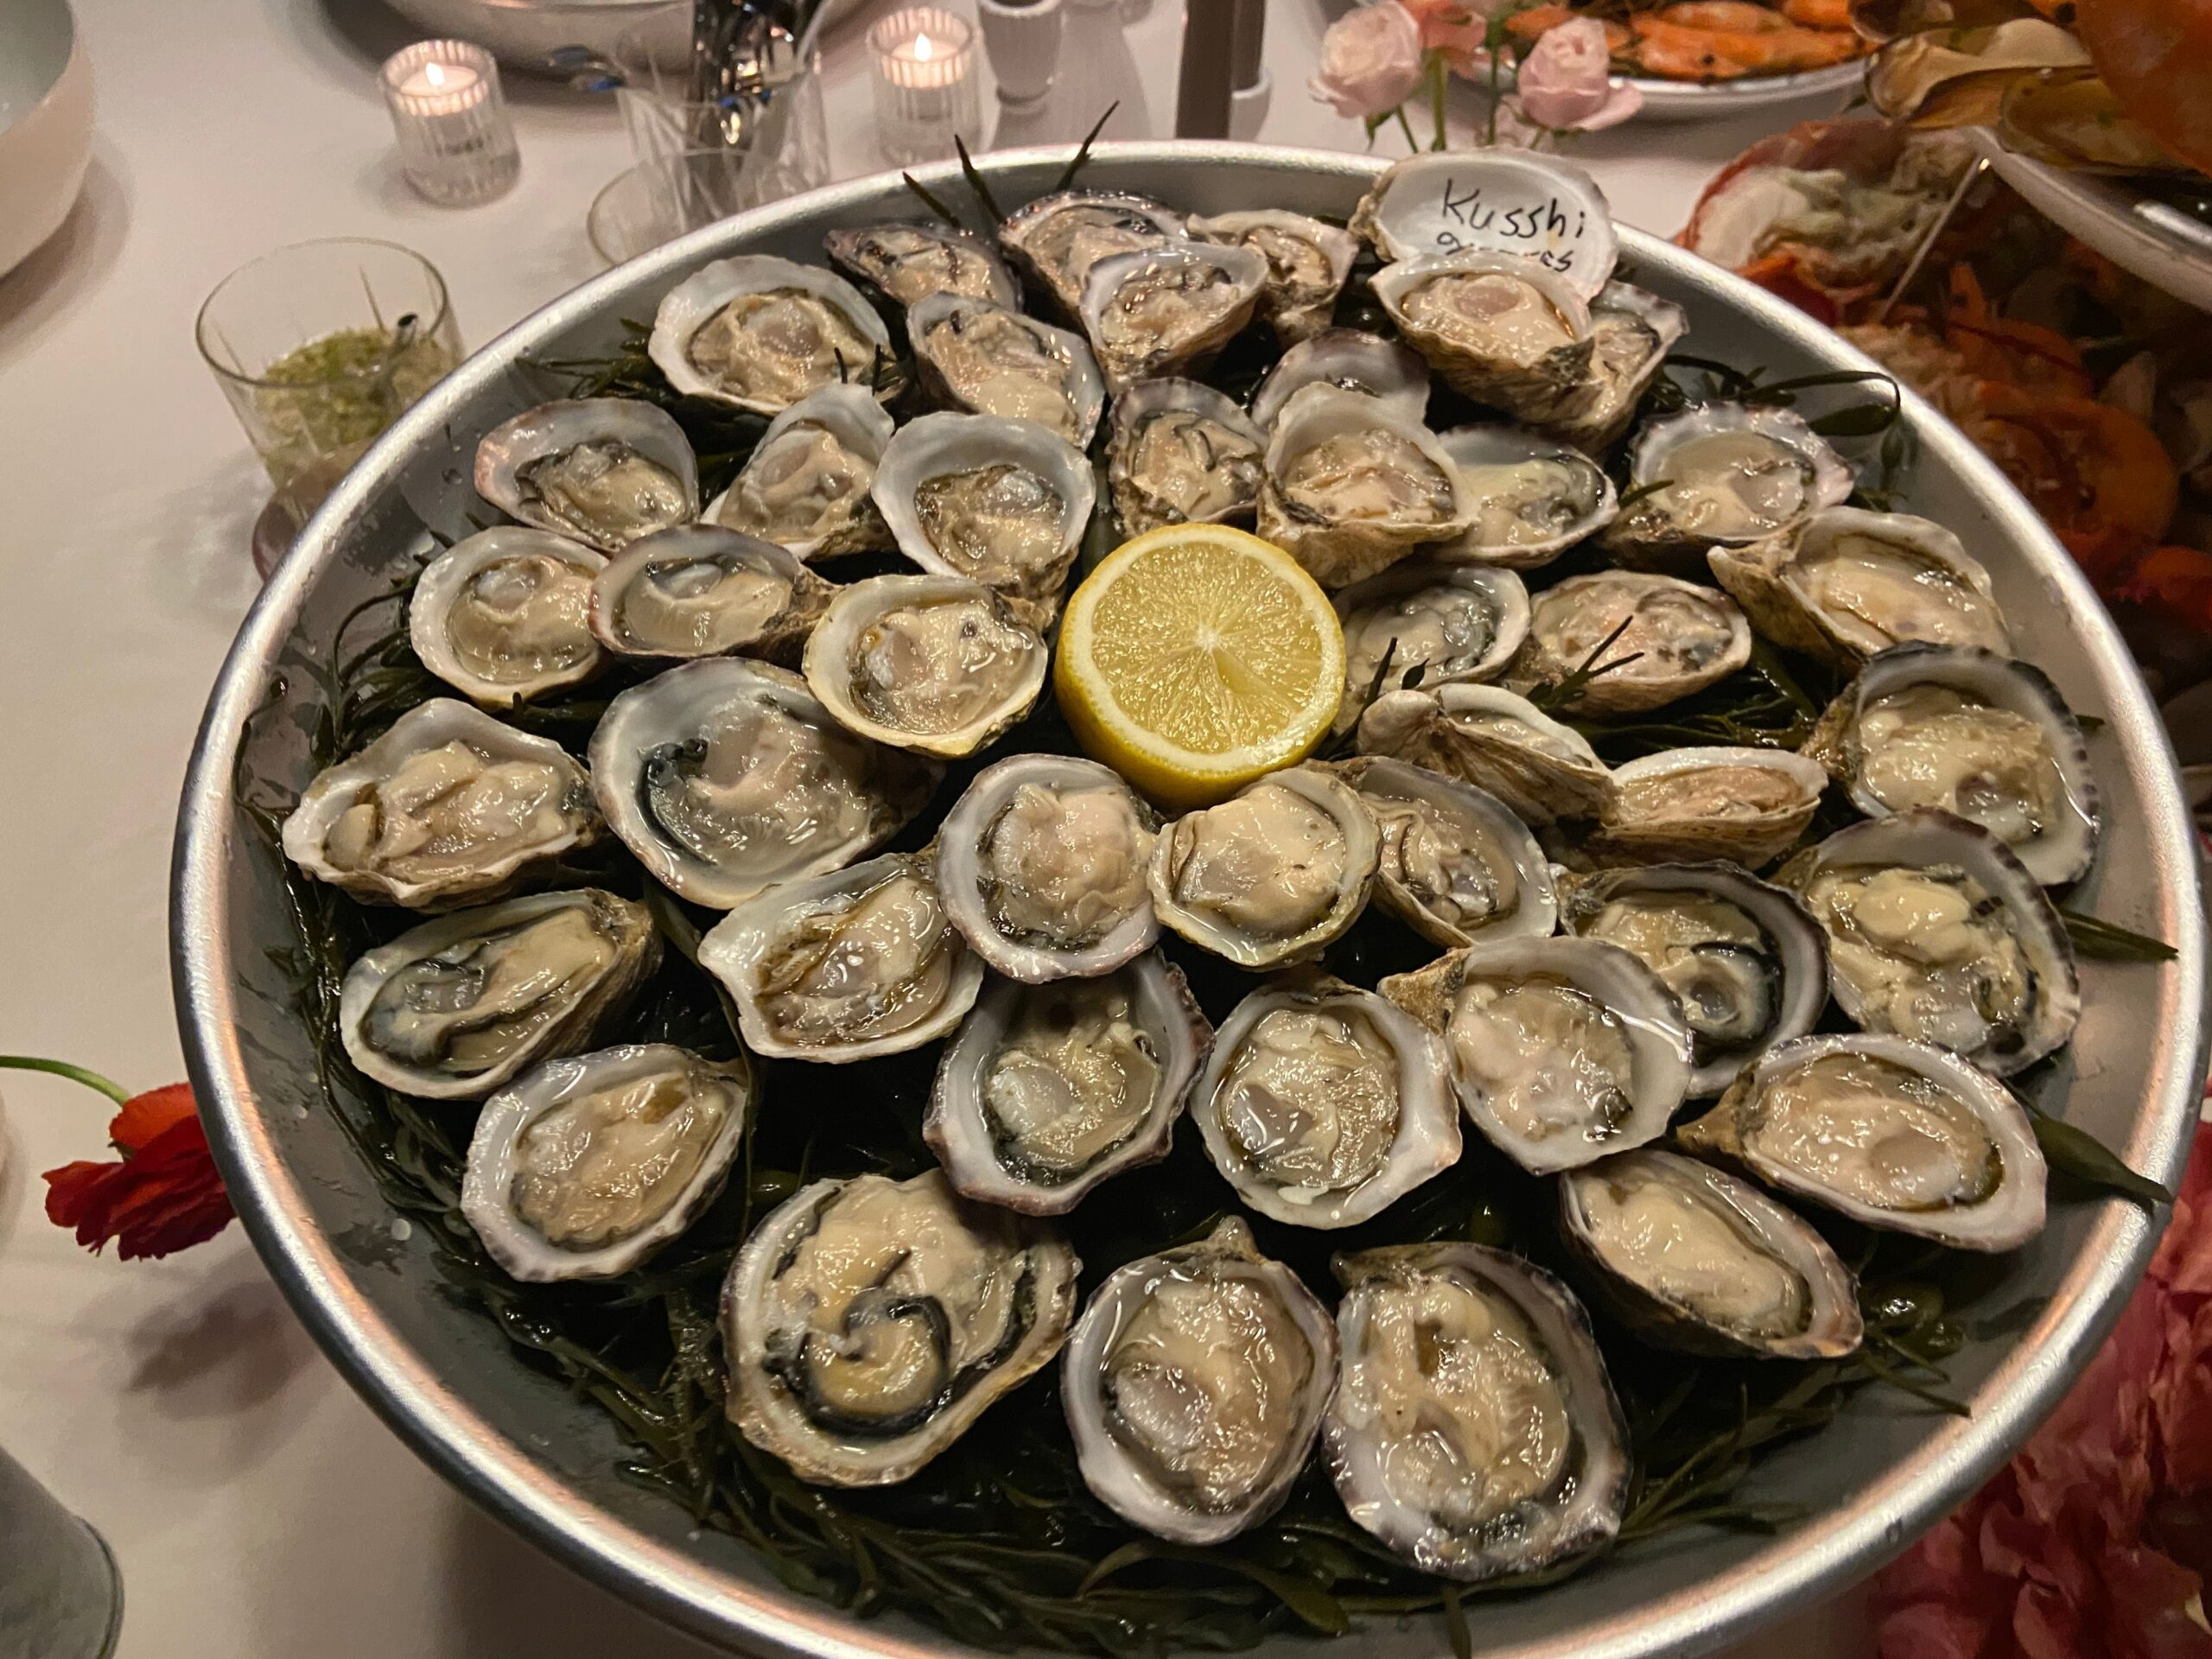 A plate full of oysters with lemon